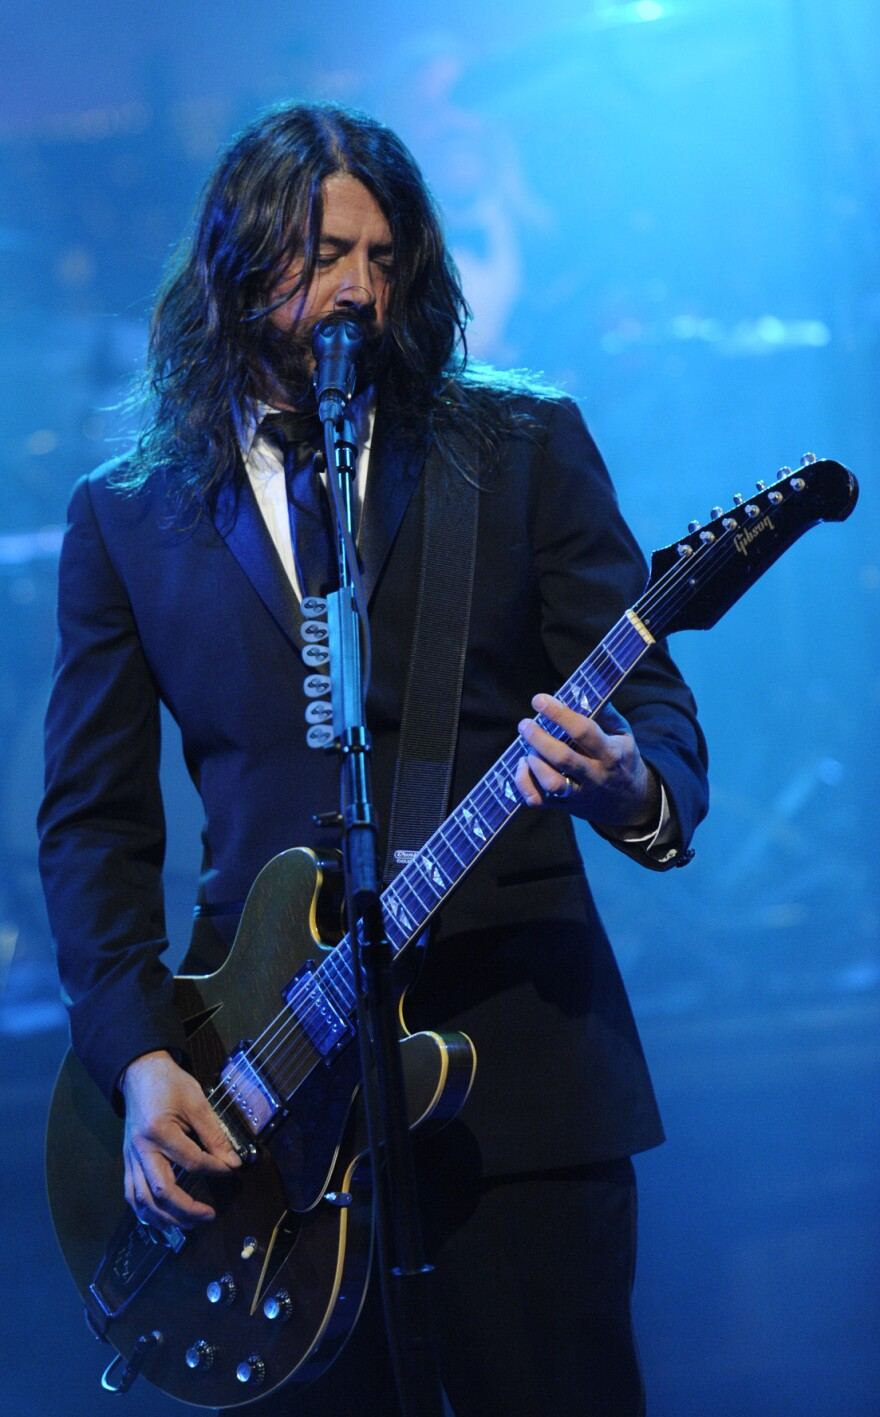 Dave Grohl of Foo Fighters performs during David Letterman's final <em>Late Show</em> broadcast Wednesday.